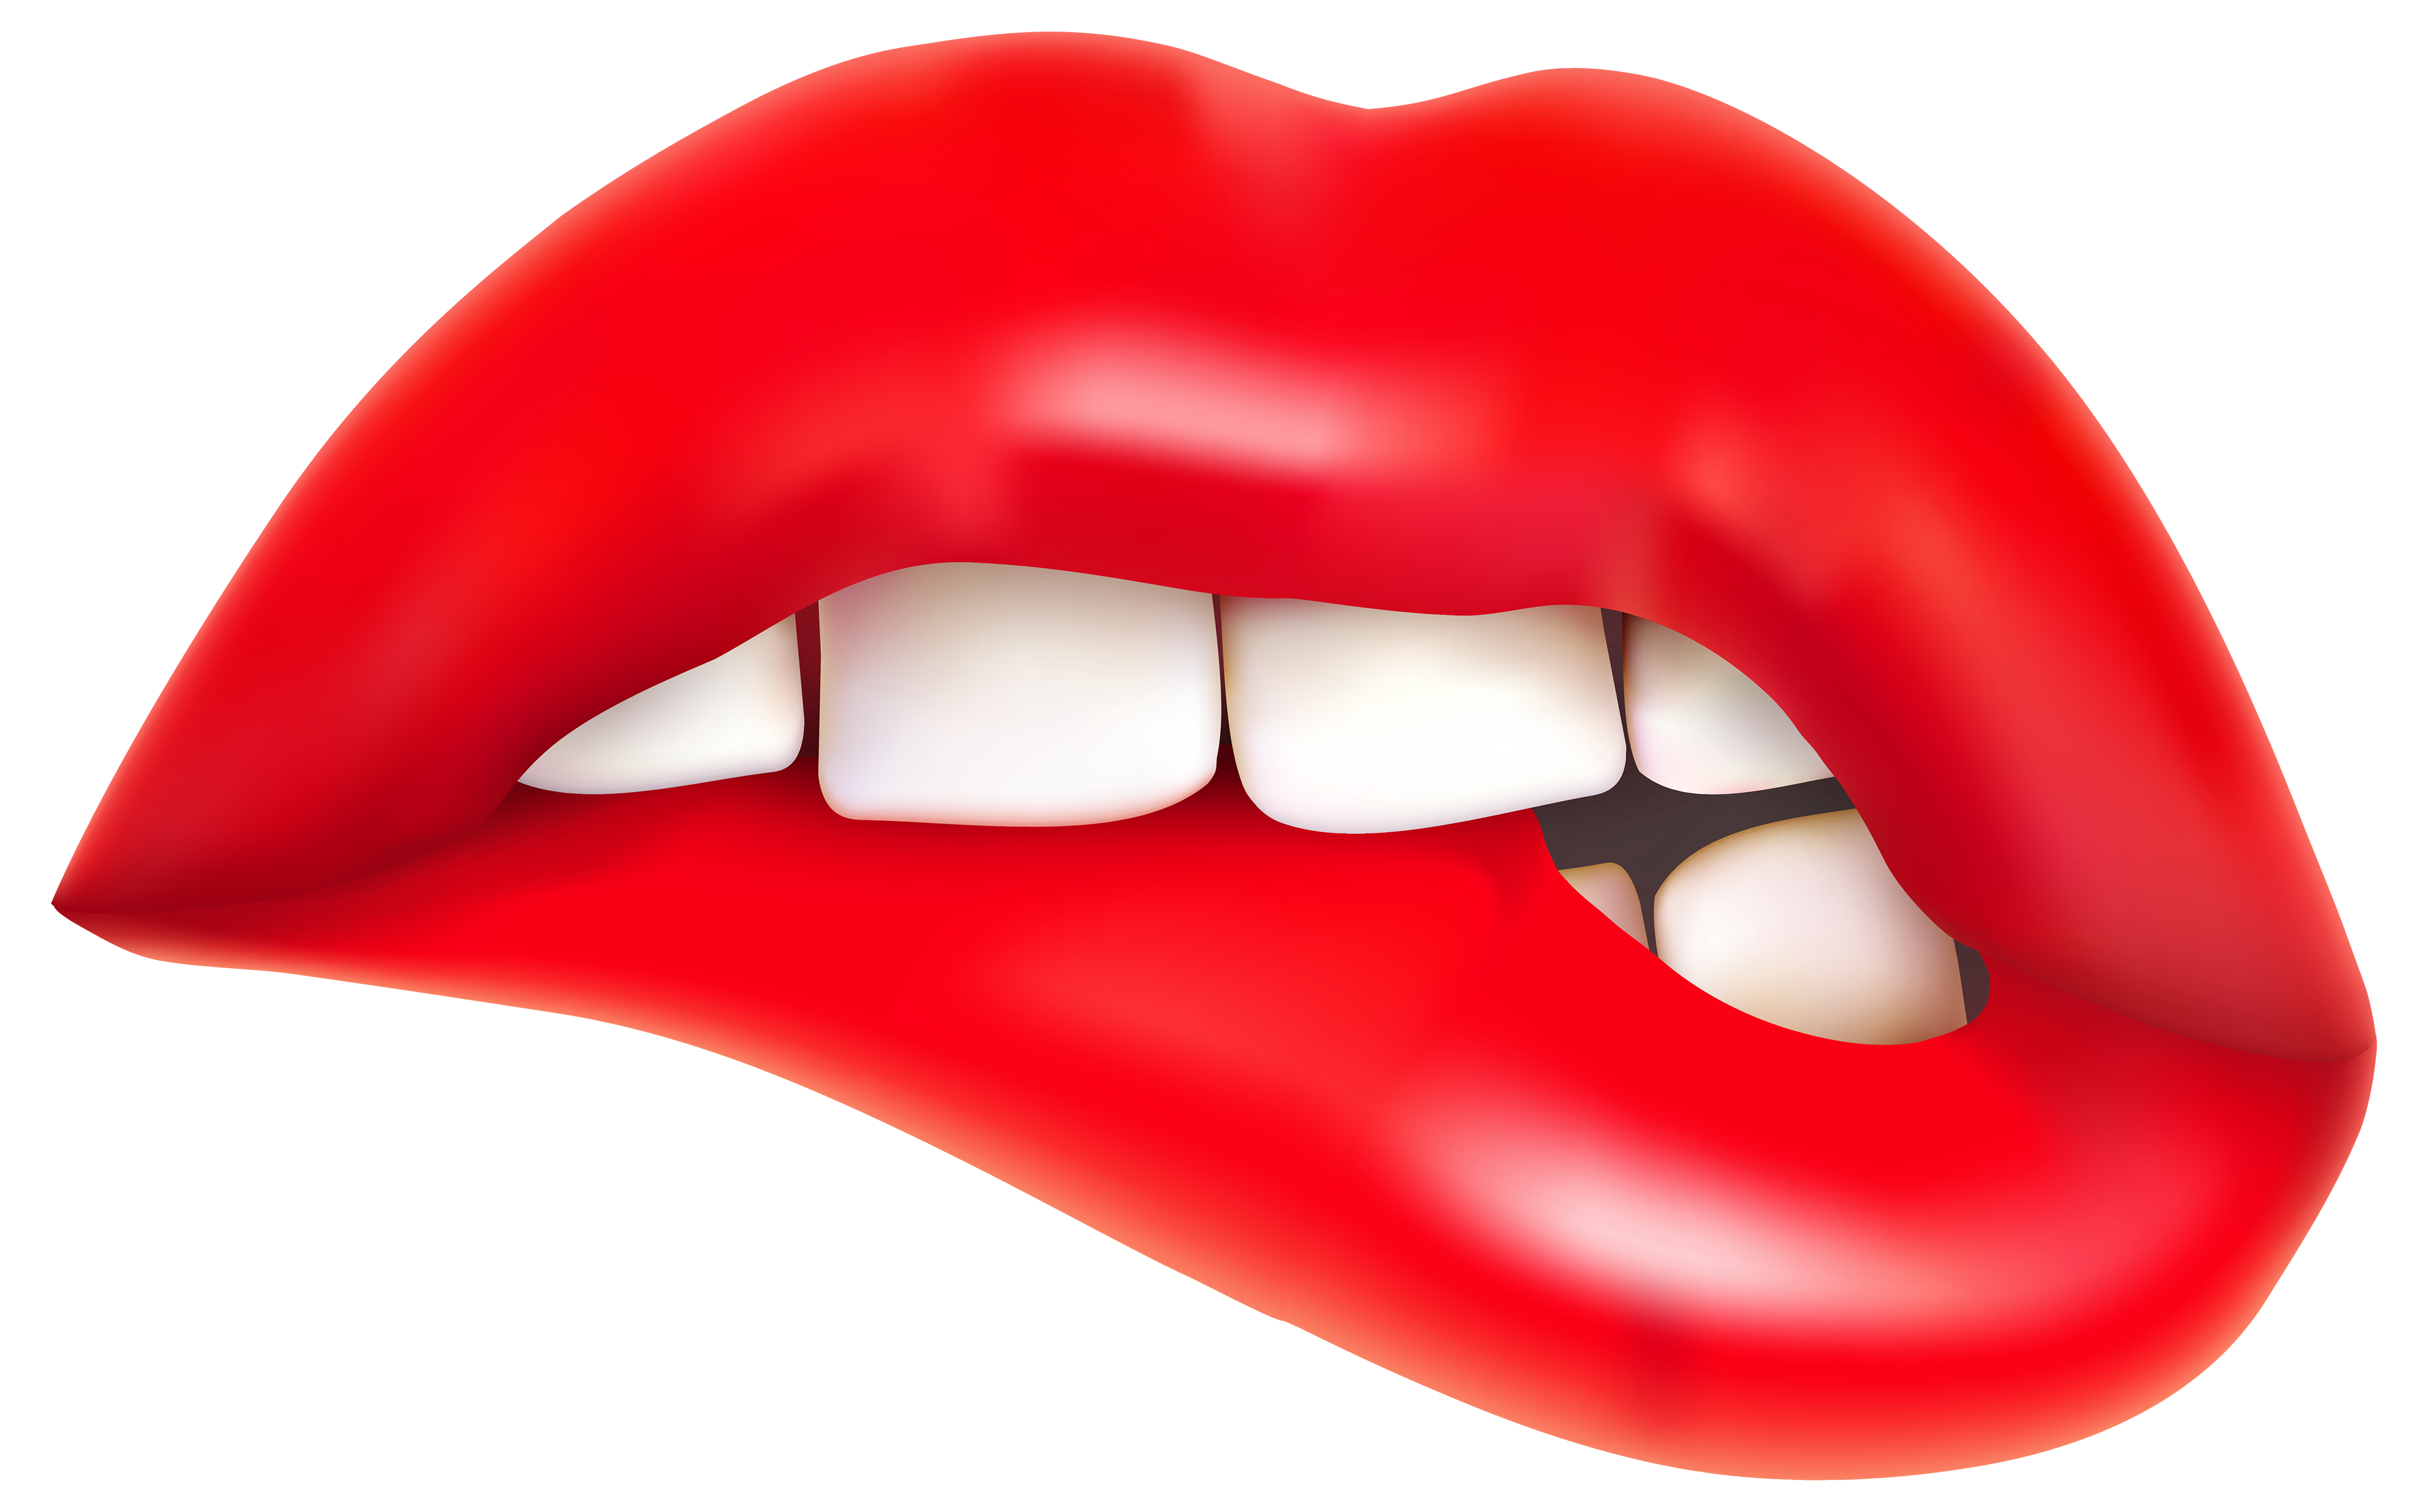 Png the best clipartpng. Lady clipart lips